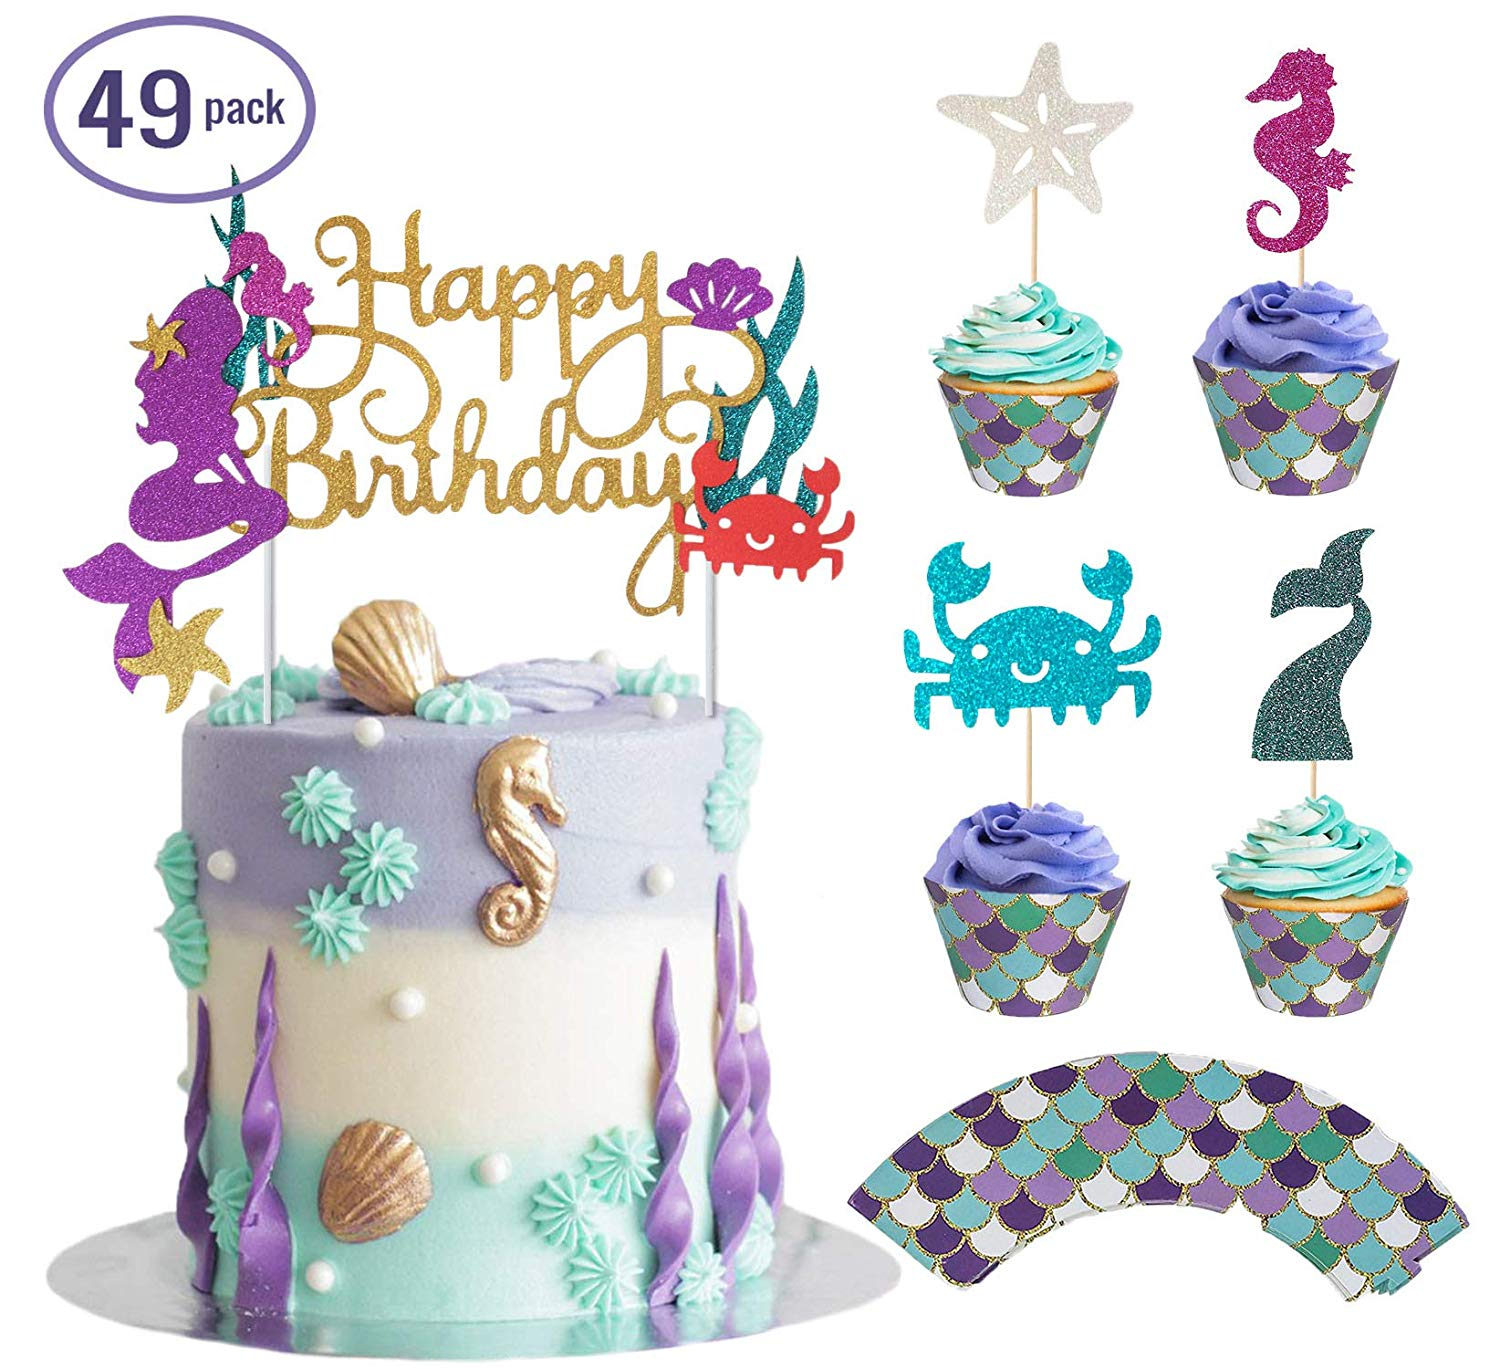 Cheap Mermaid Cake Designs Find Mermaid Cake Designs Deals On Line